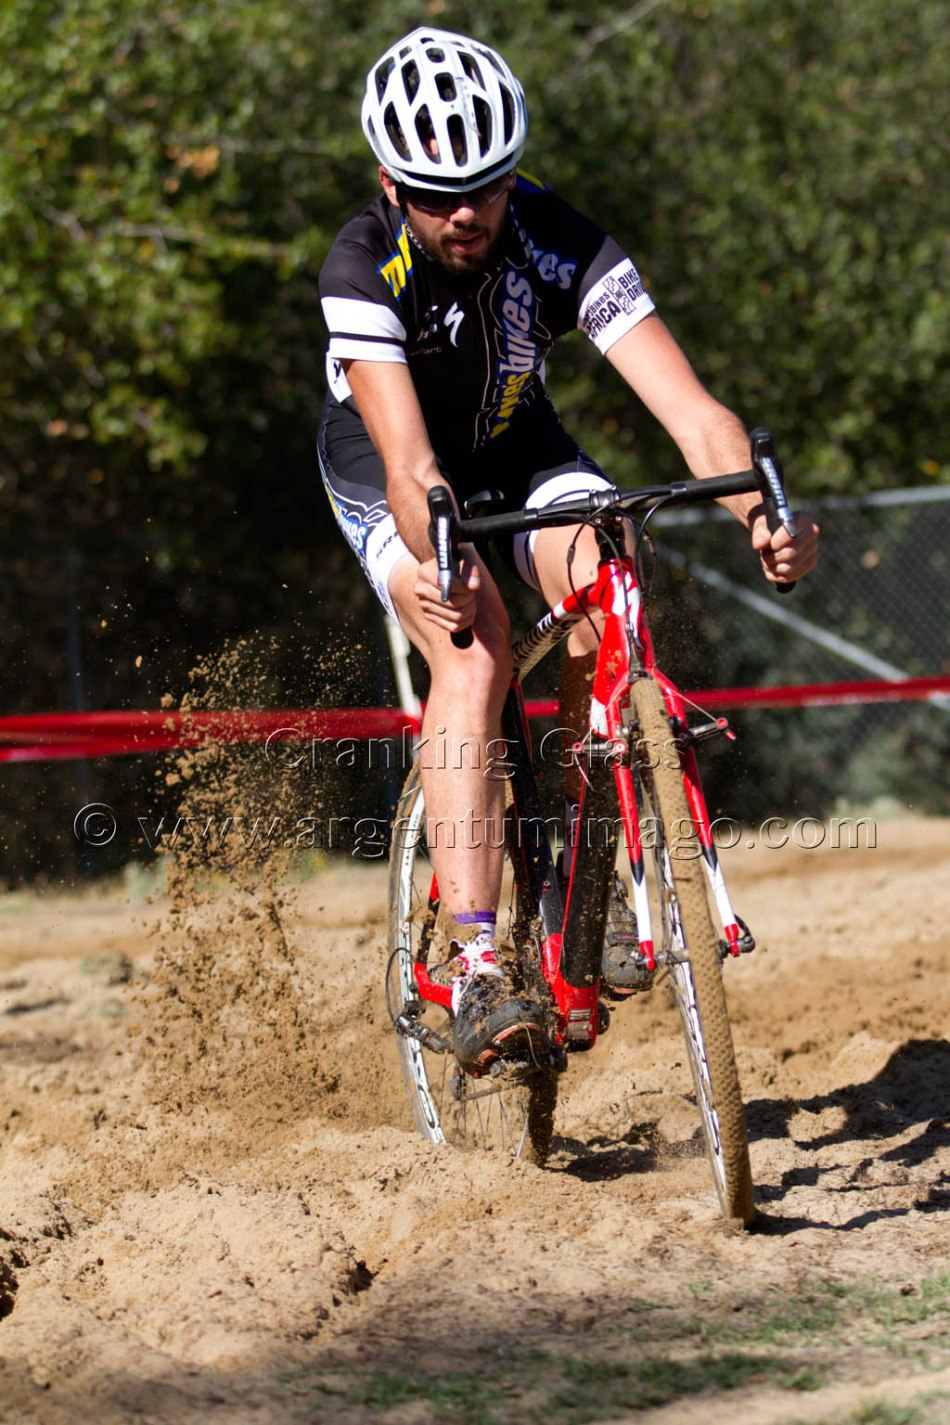 The Course at SacCX Lembi Park had Riders go through the Sand Pit Twice